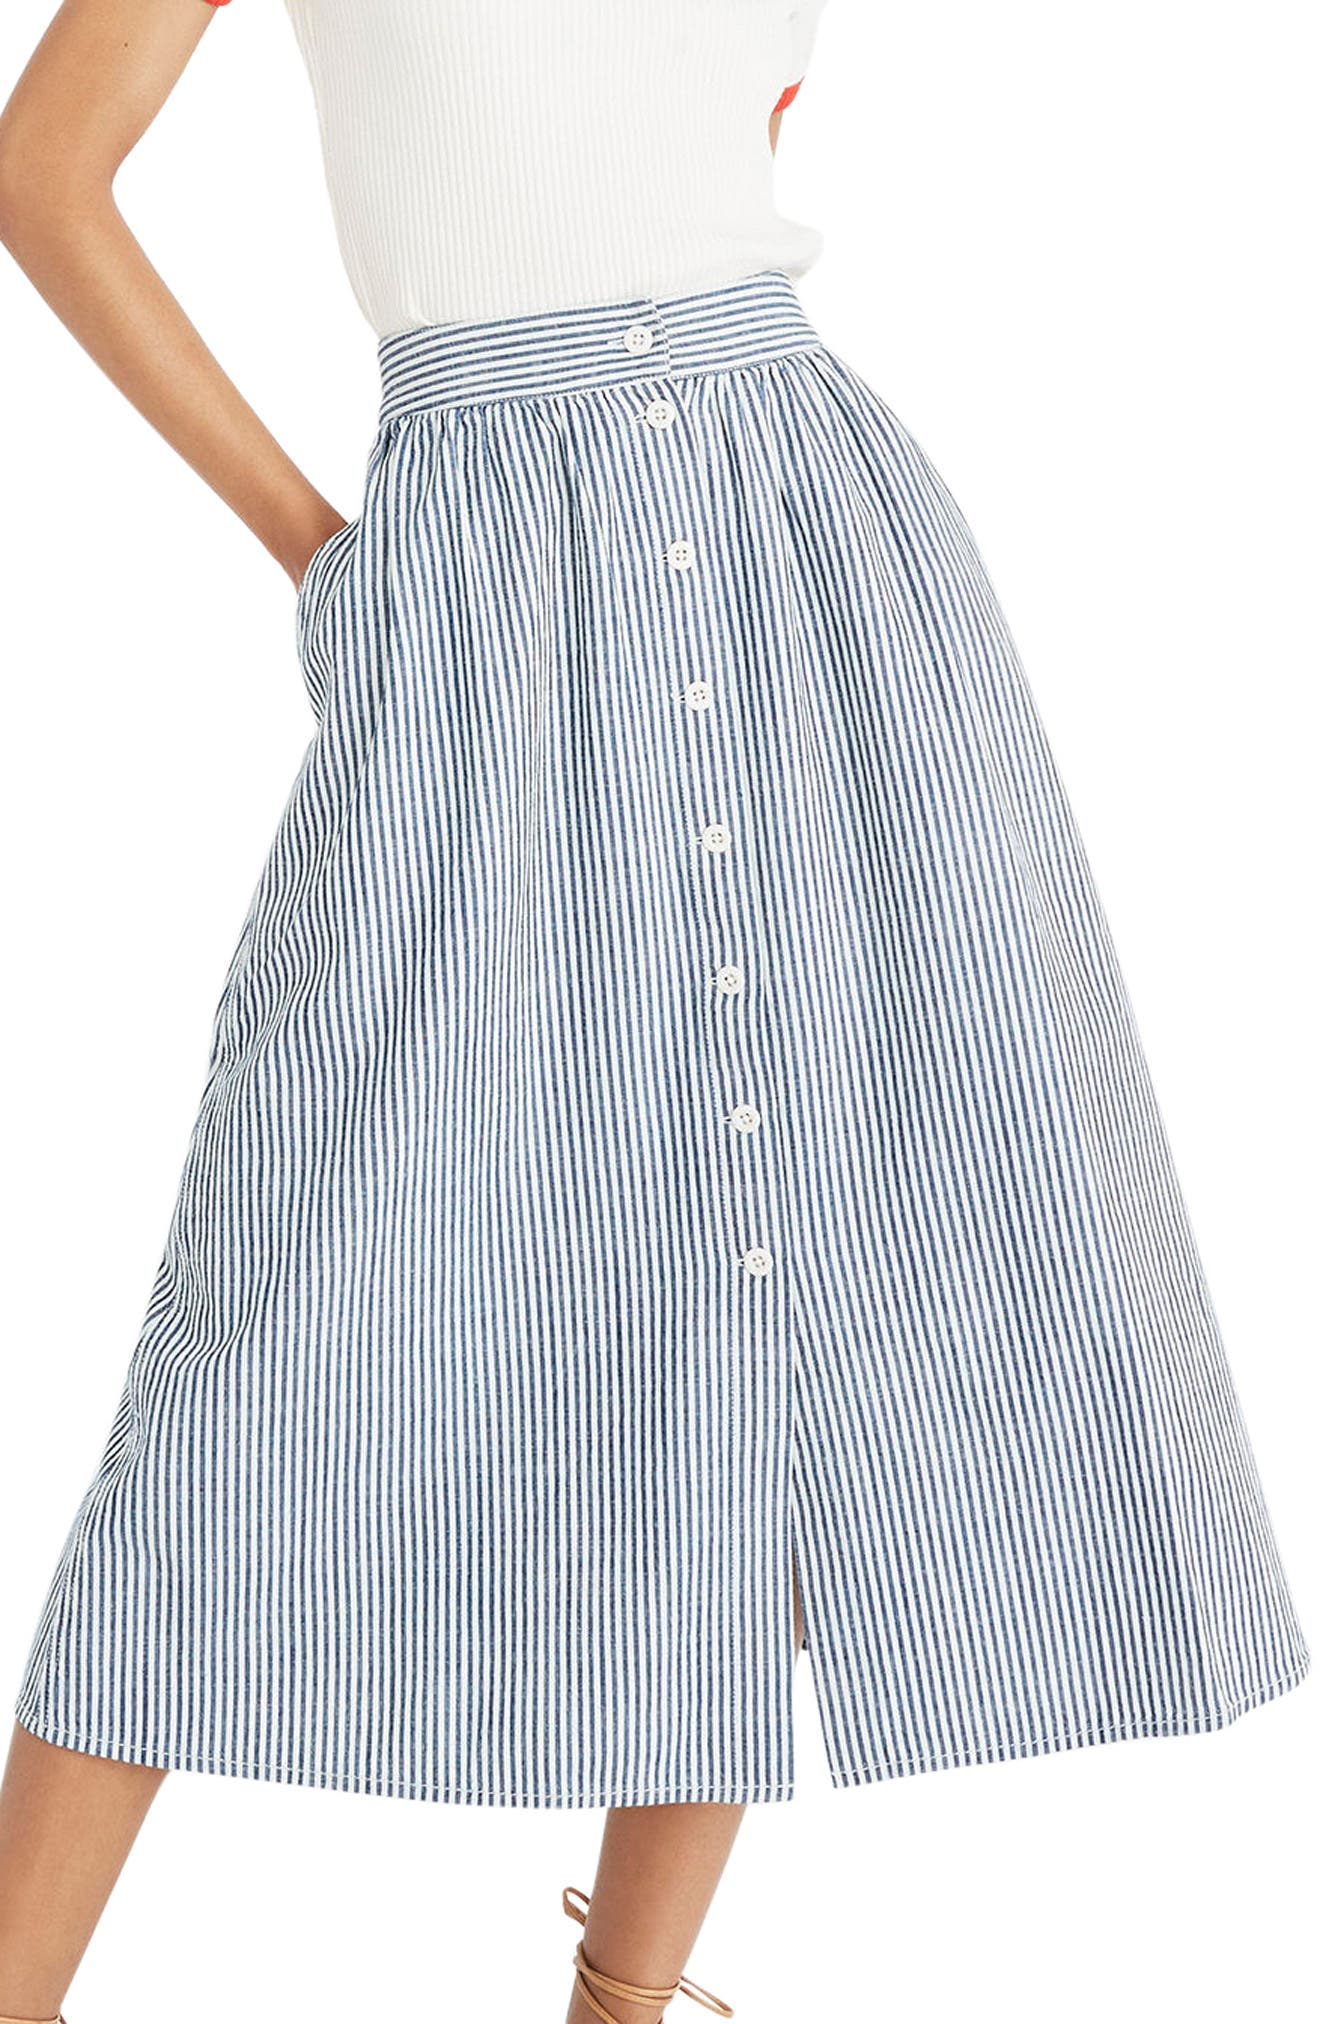 Palisade Chambray Stripe Button Front Midi Skirt,                         Main,                         color, Chambray Stripe